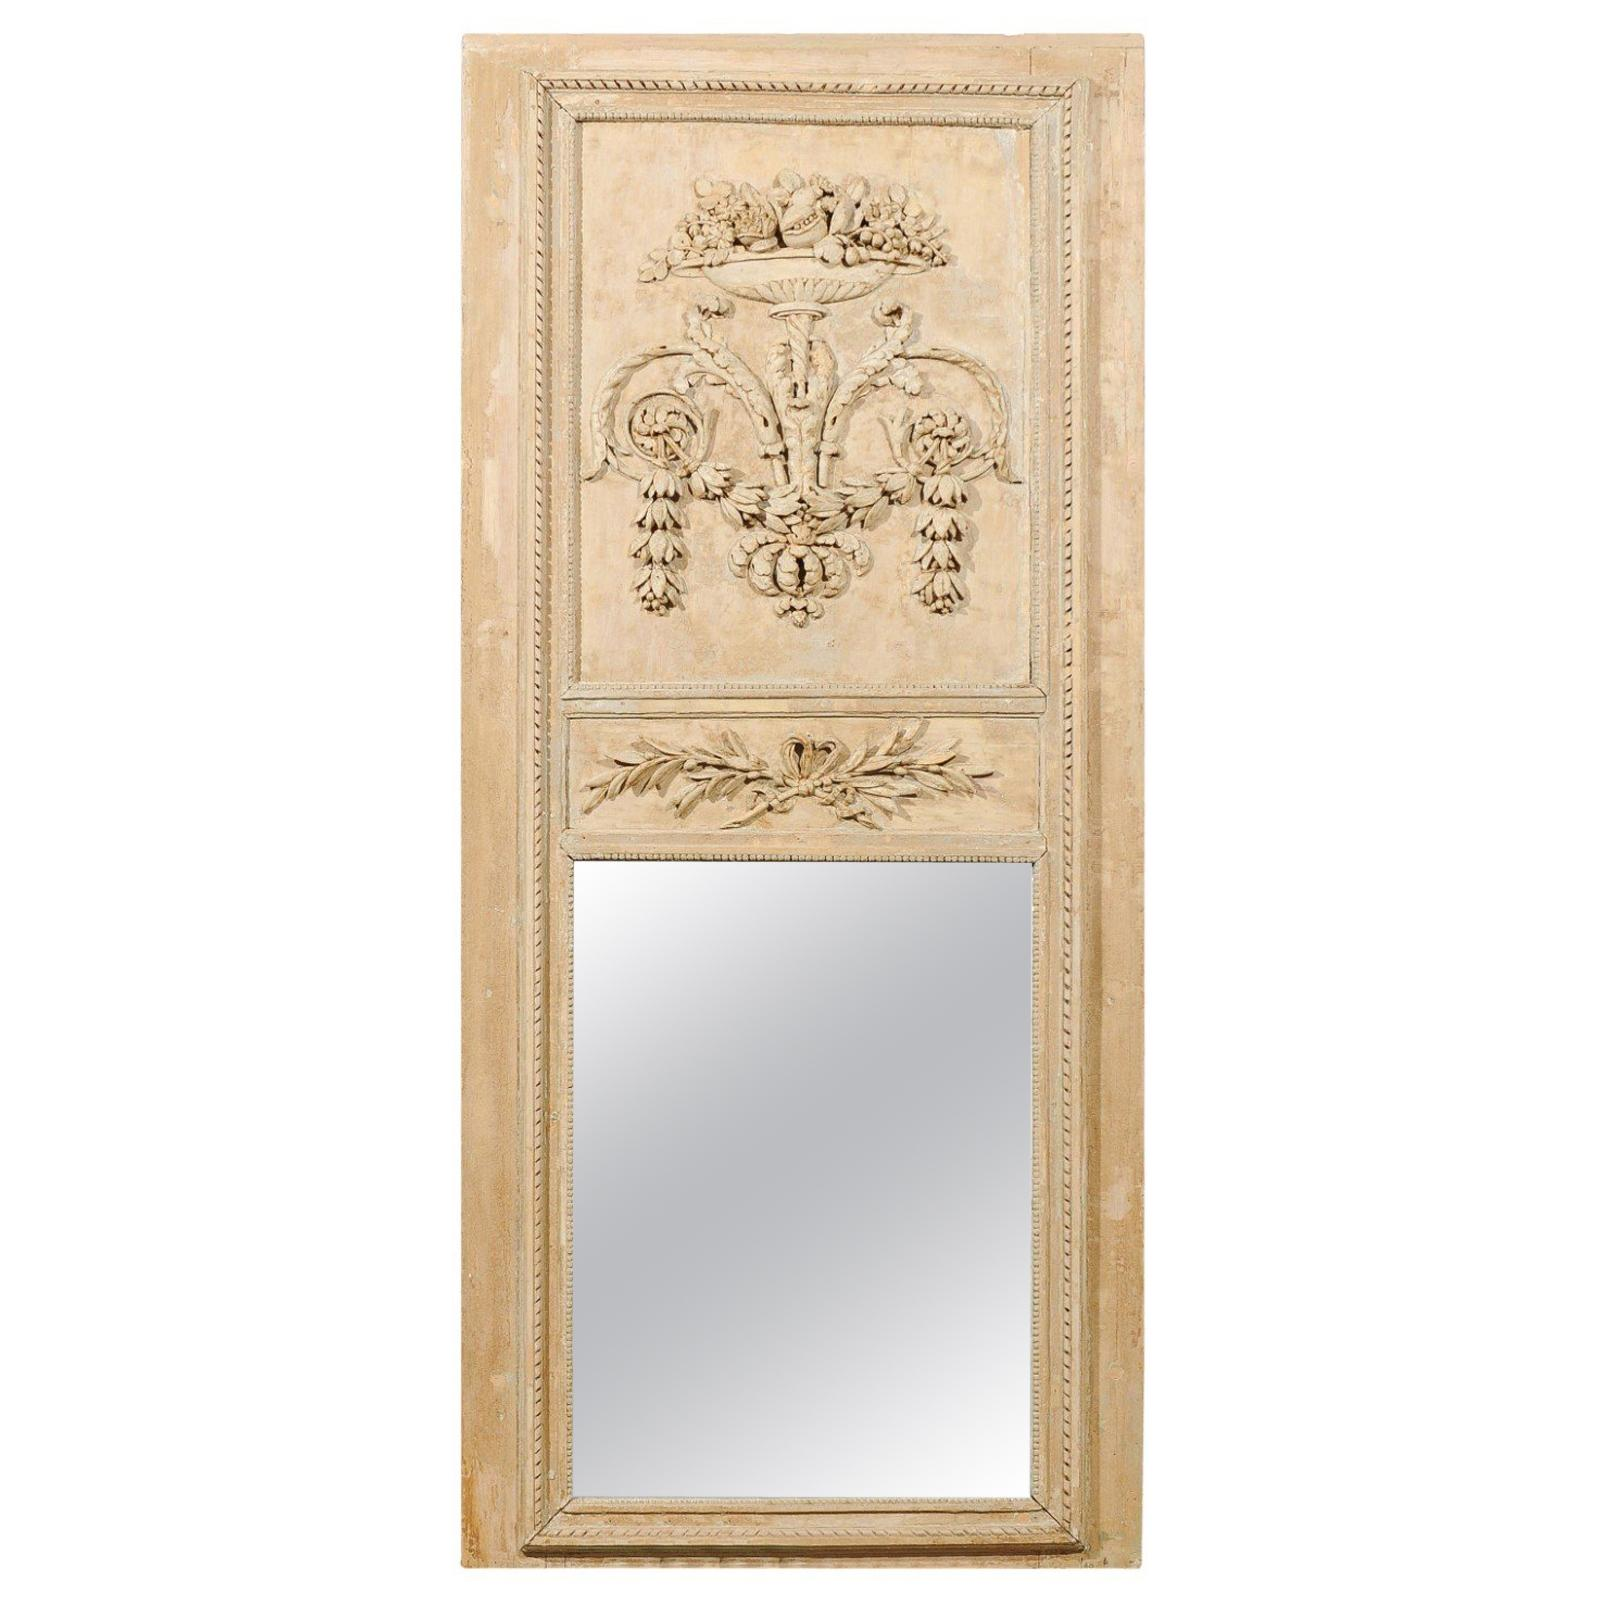 French Louis XVI Period 1790s Painted Wood Trumeau Mirror with Scrollwork Motifs